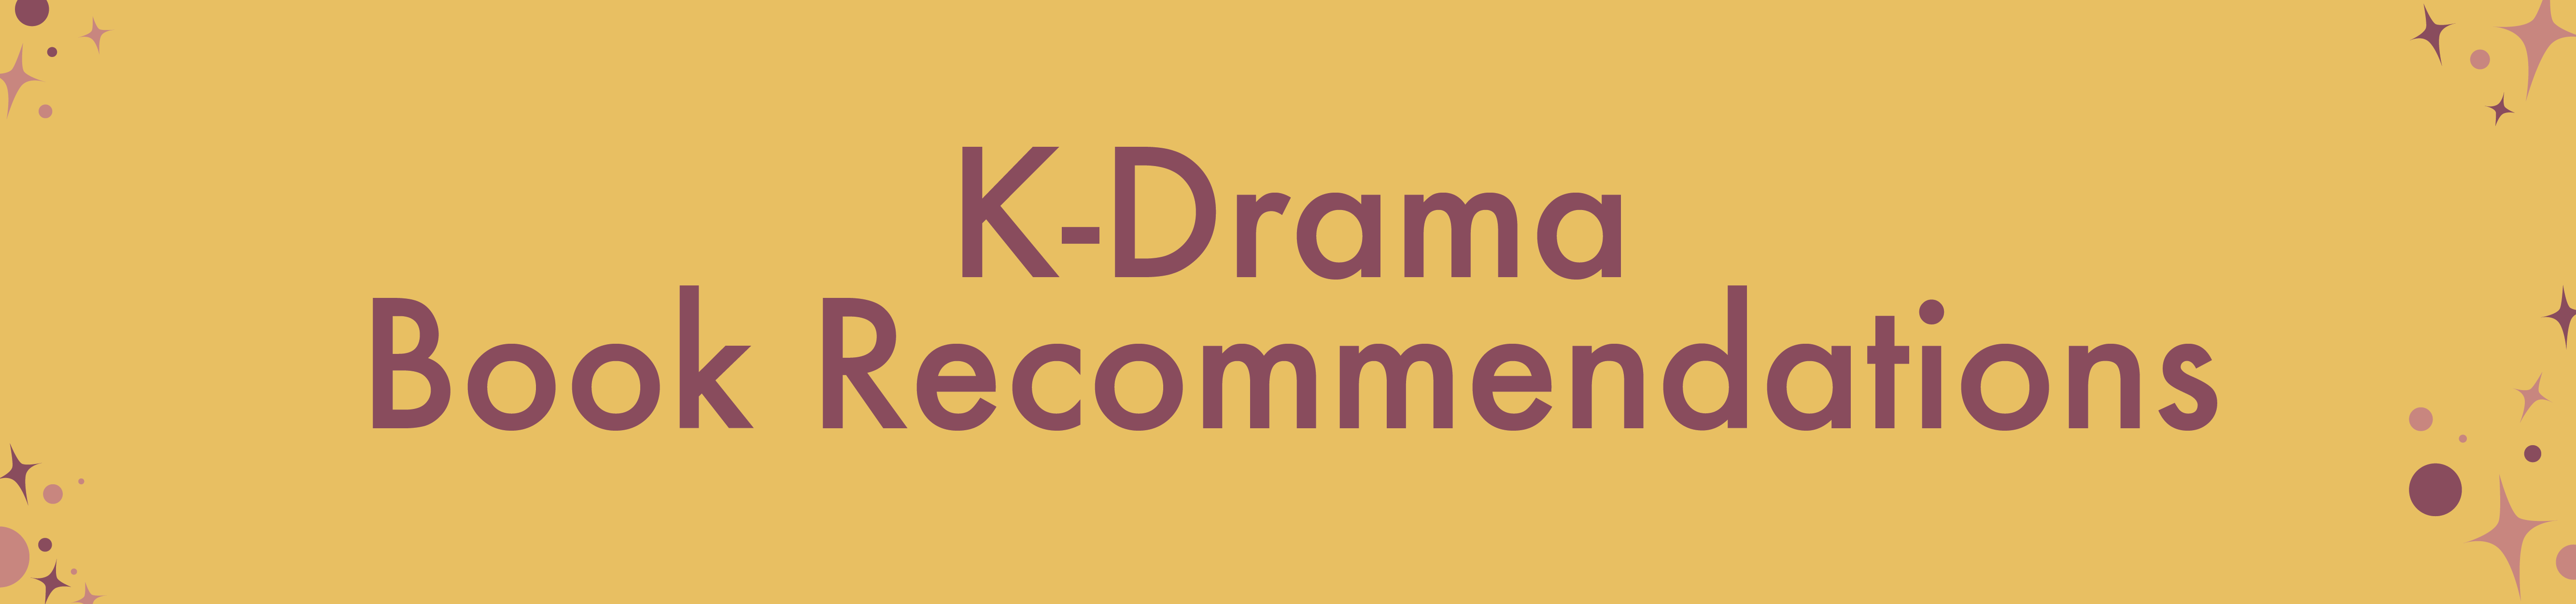 K-Drama Book Recommendations header